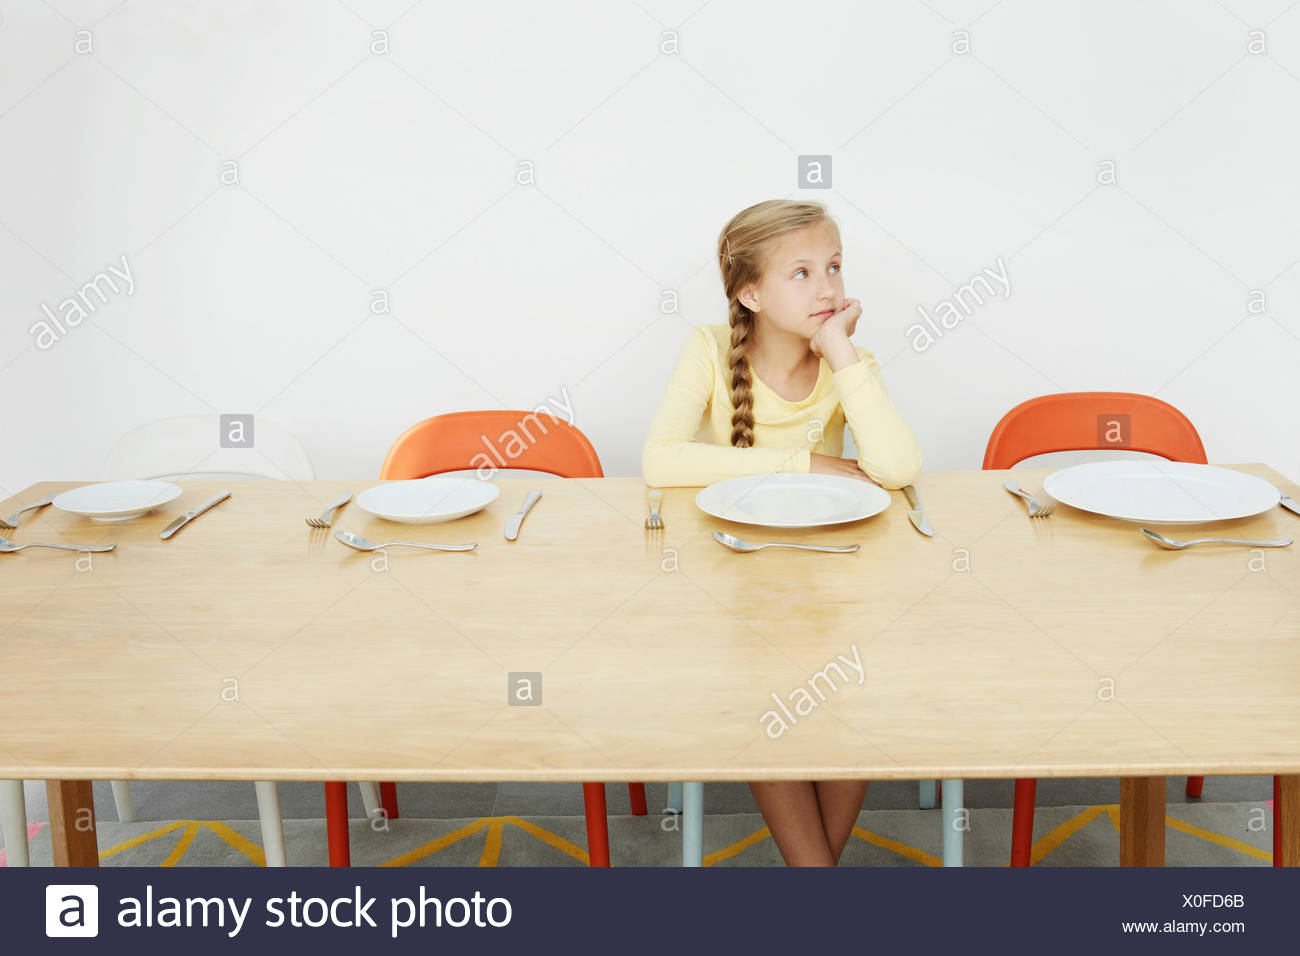 Girl sitting at table with empty plate, looking away - Stock Image